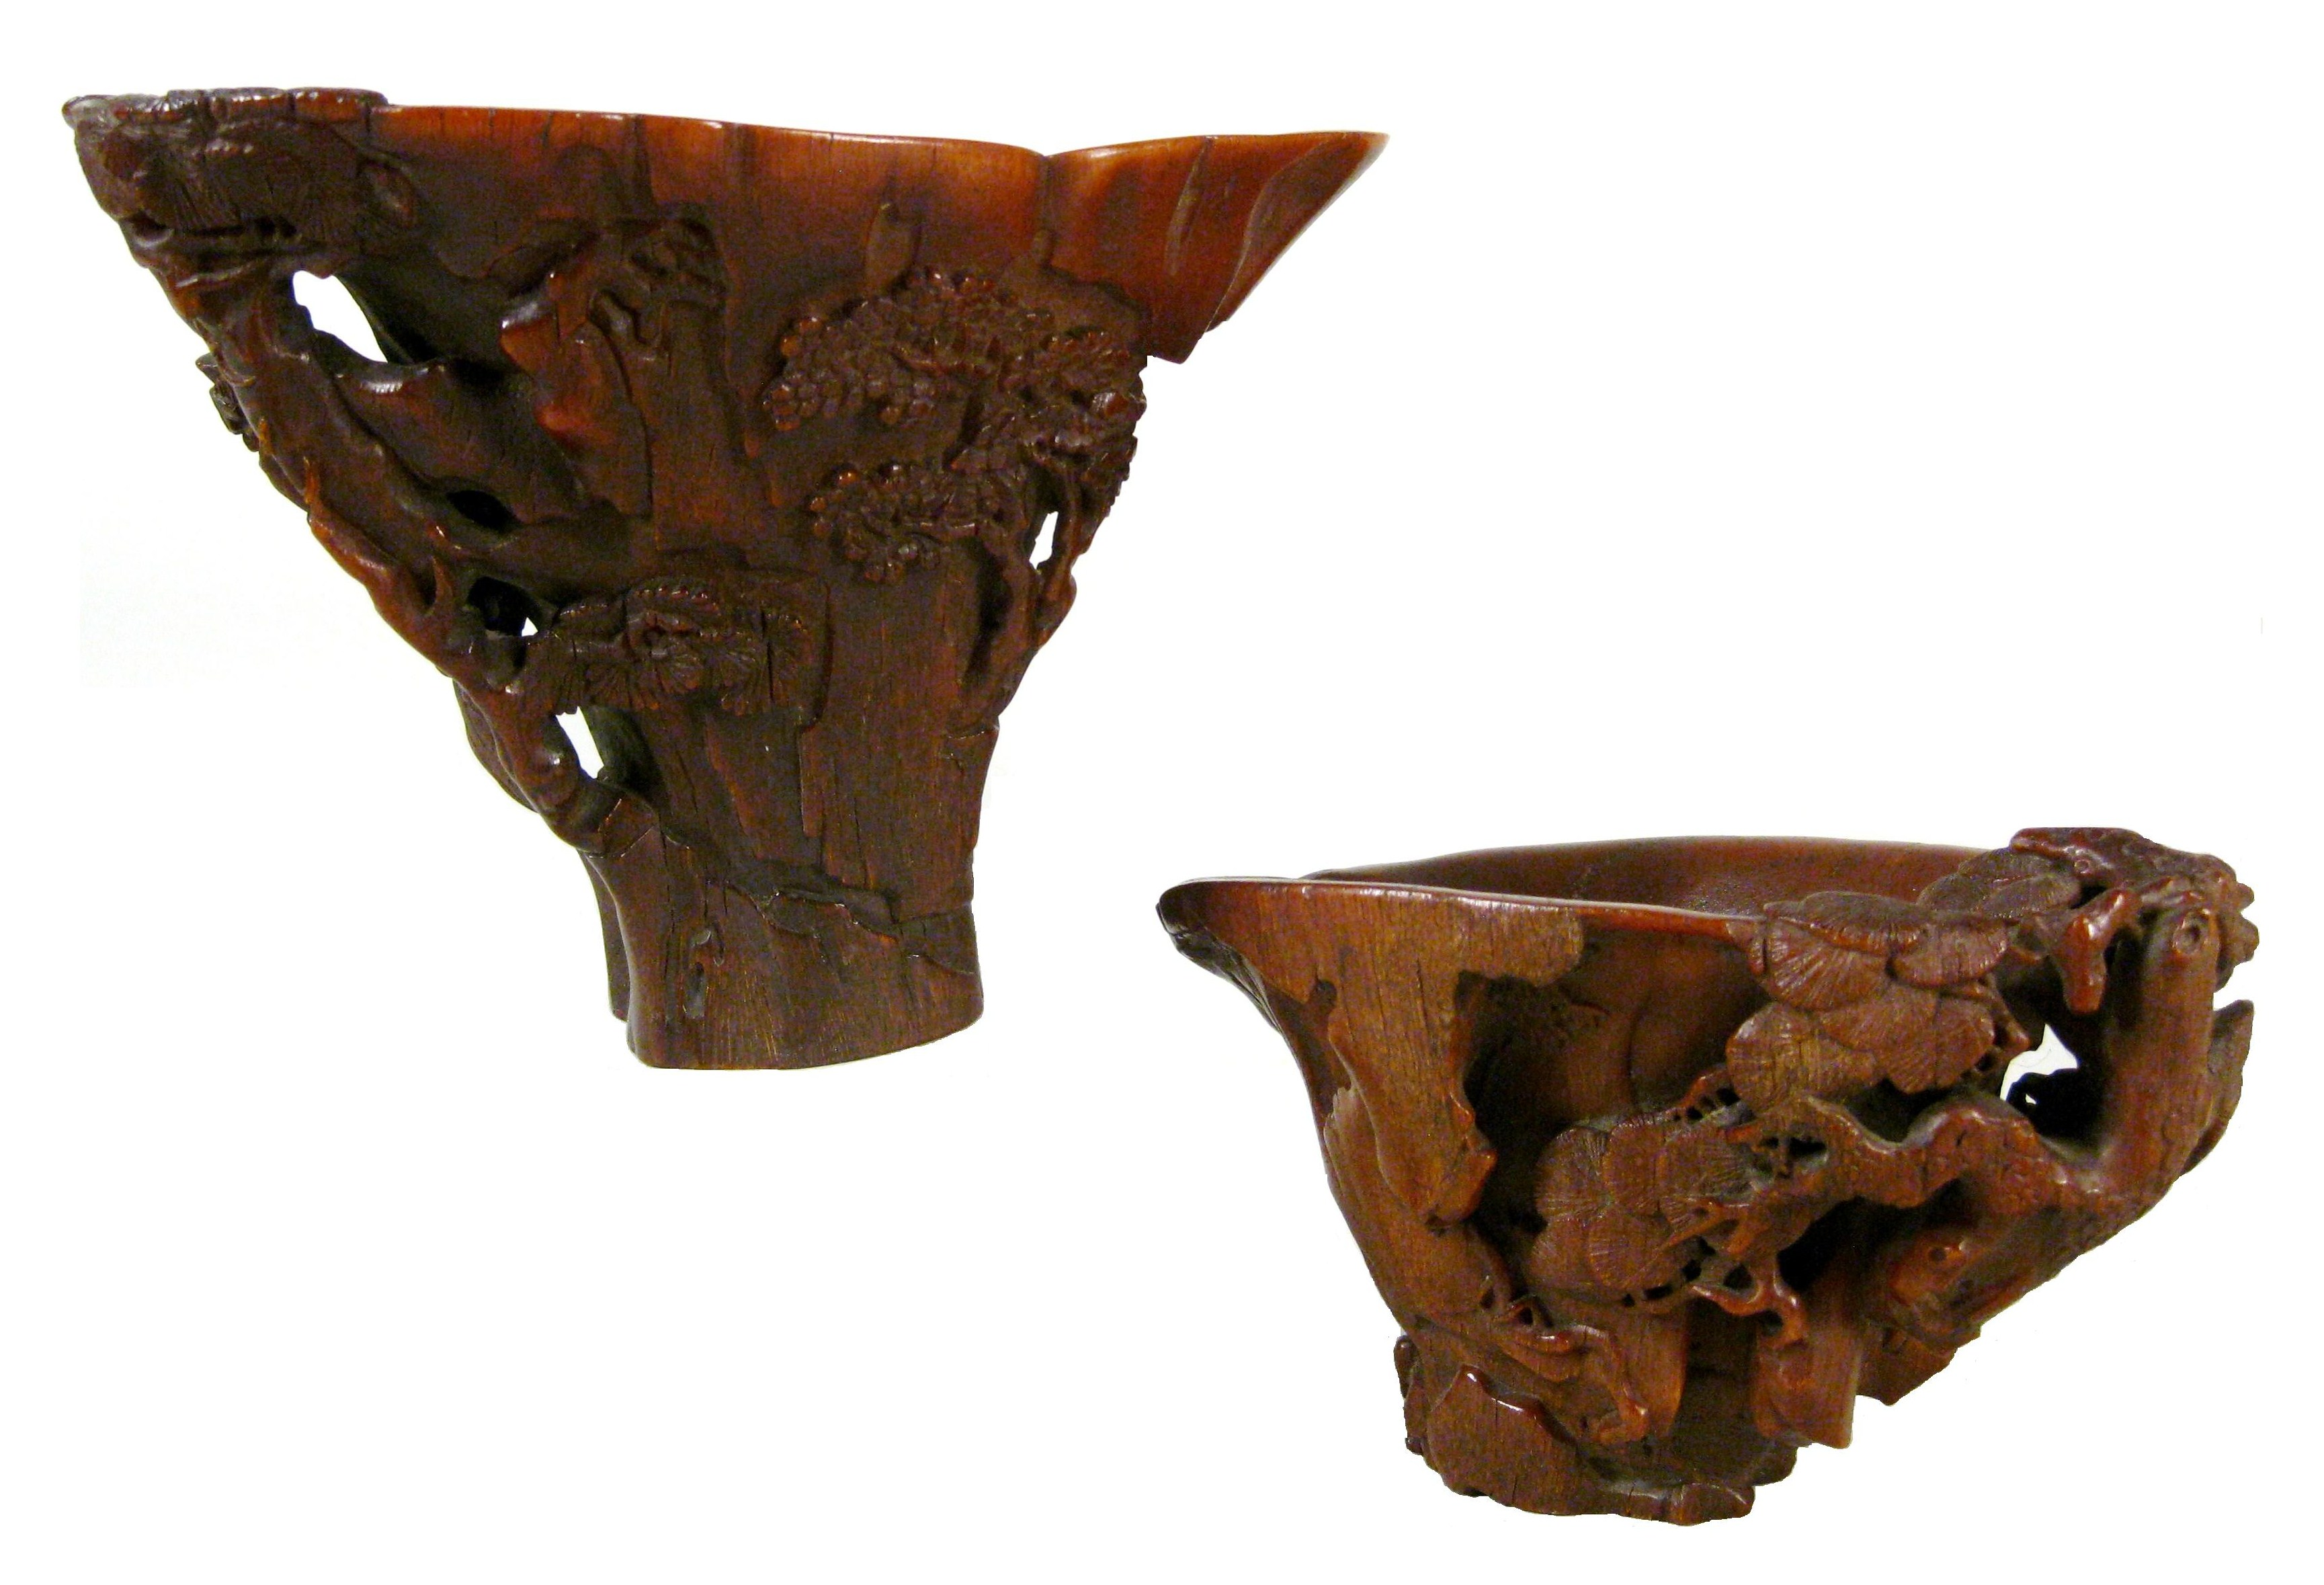 Two Chinese Carved Rhinoceros Horn Libation Cups, 17th C. Sold Collectively For $263,636.